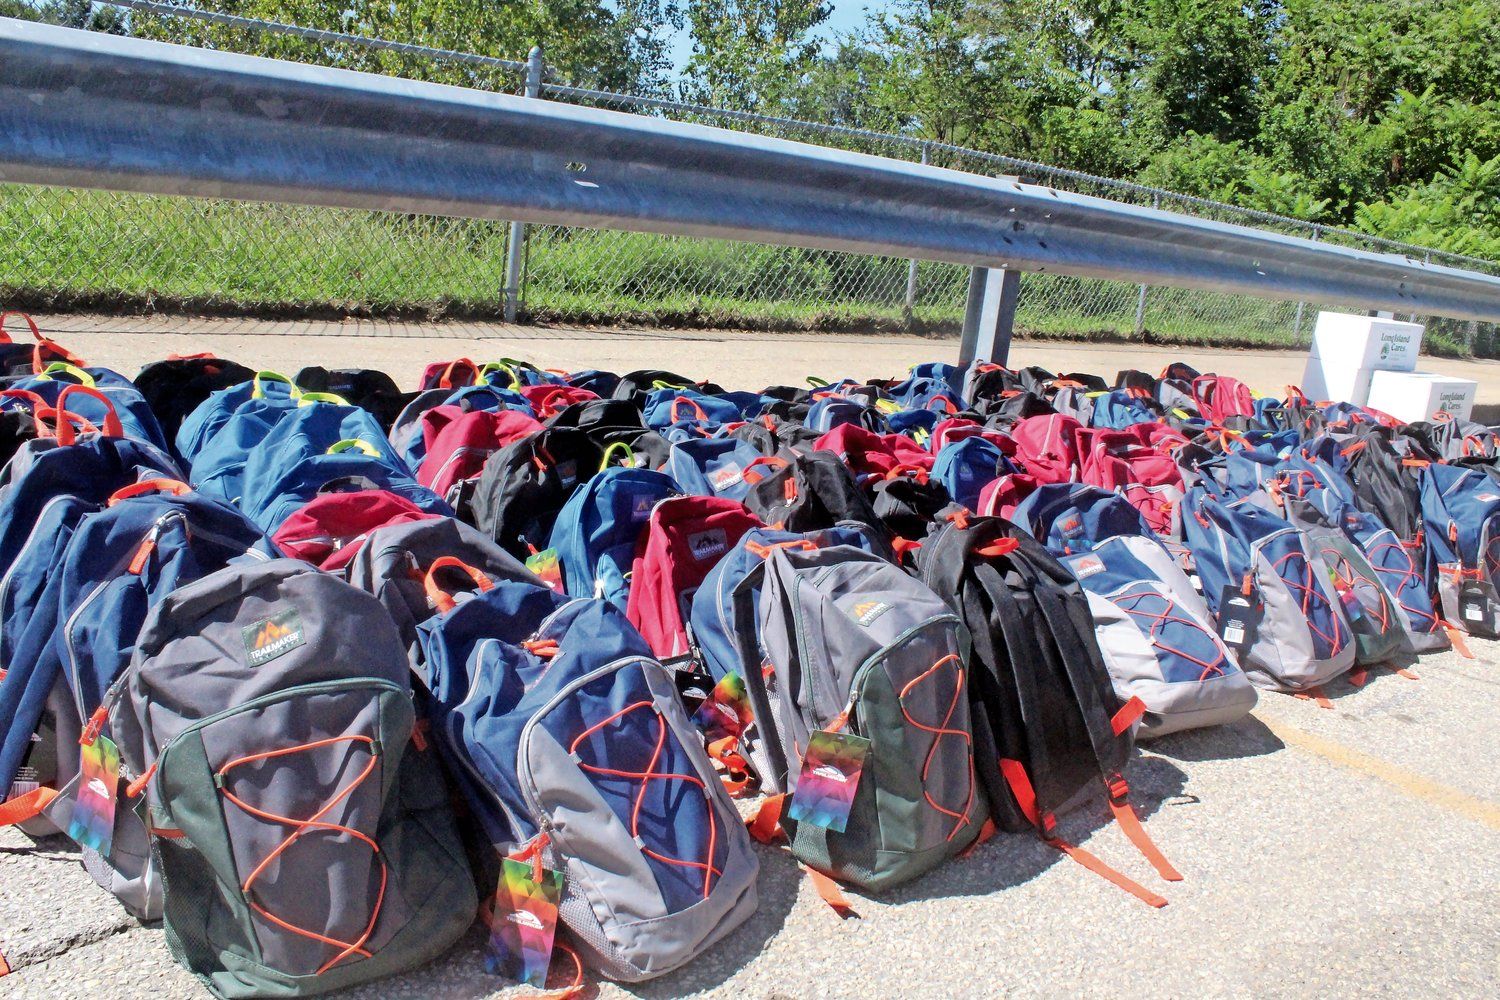 The backpacks contained a variety of school supplies, and were organized by grade level.